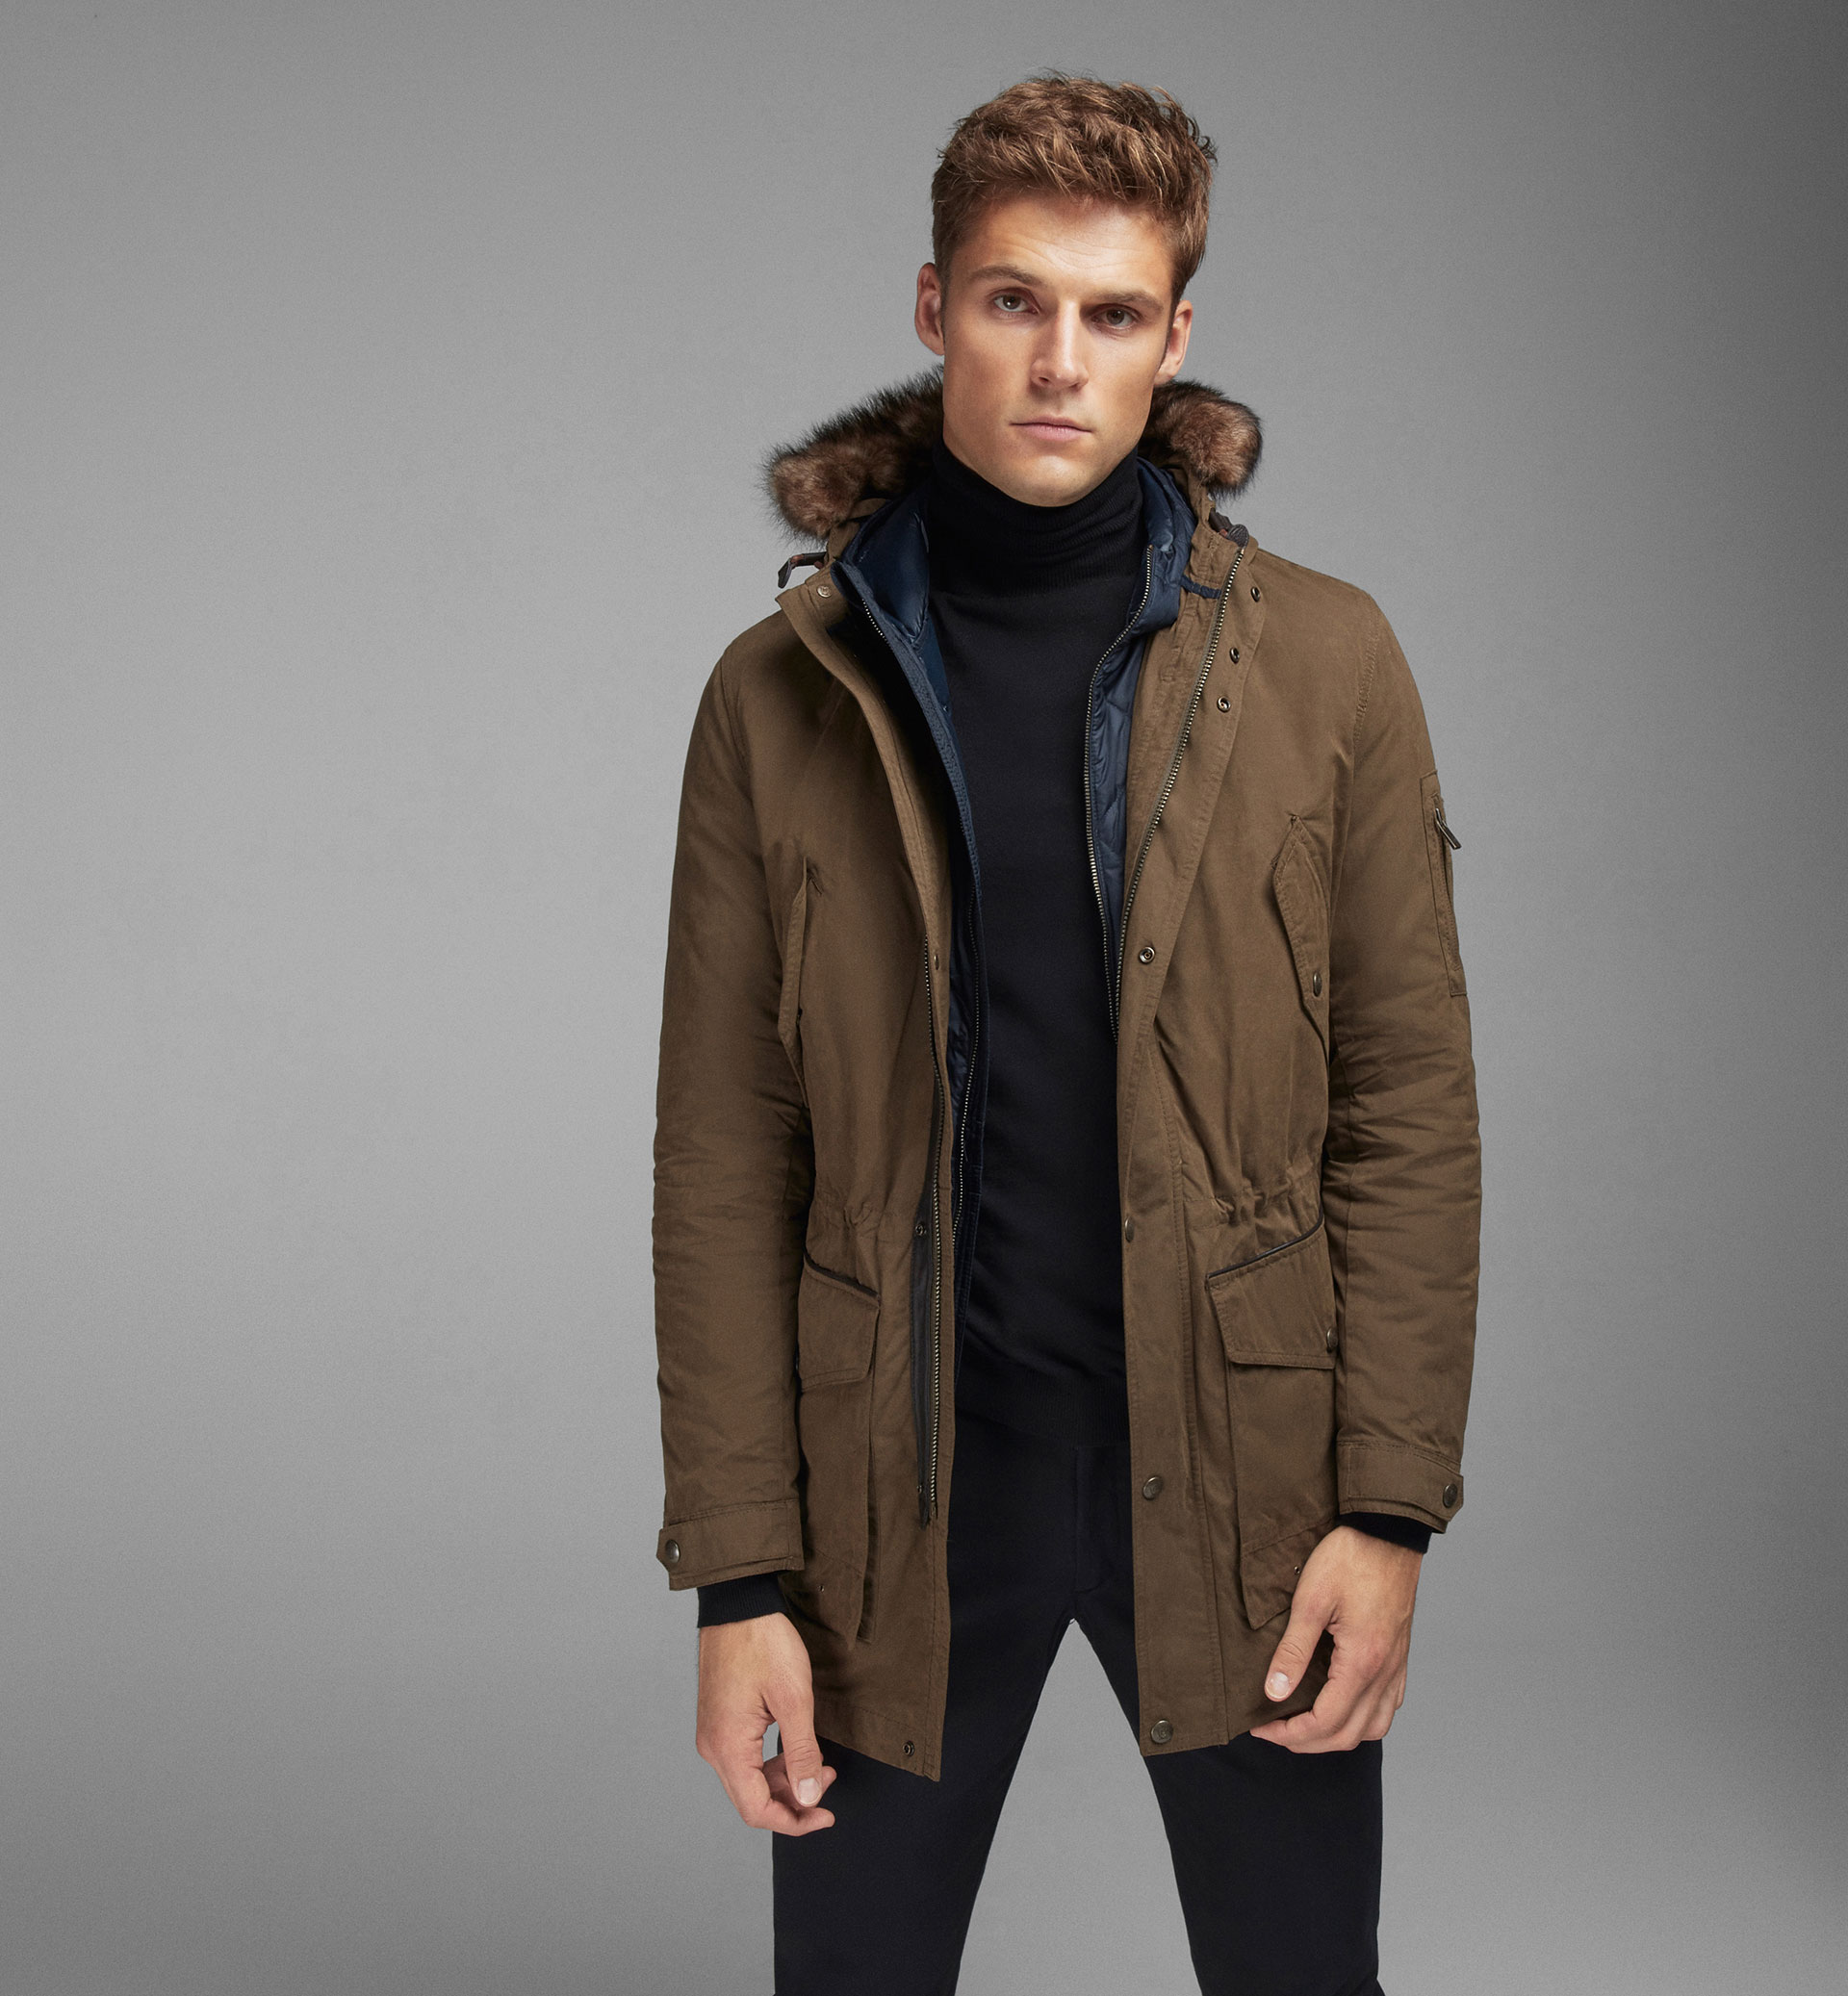 KHAKI TECHNICAL PARKA WITH DETACHABLE DETAIL